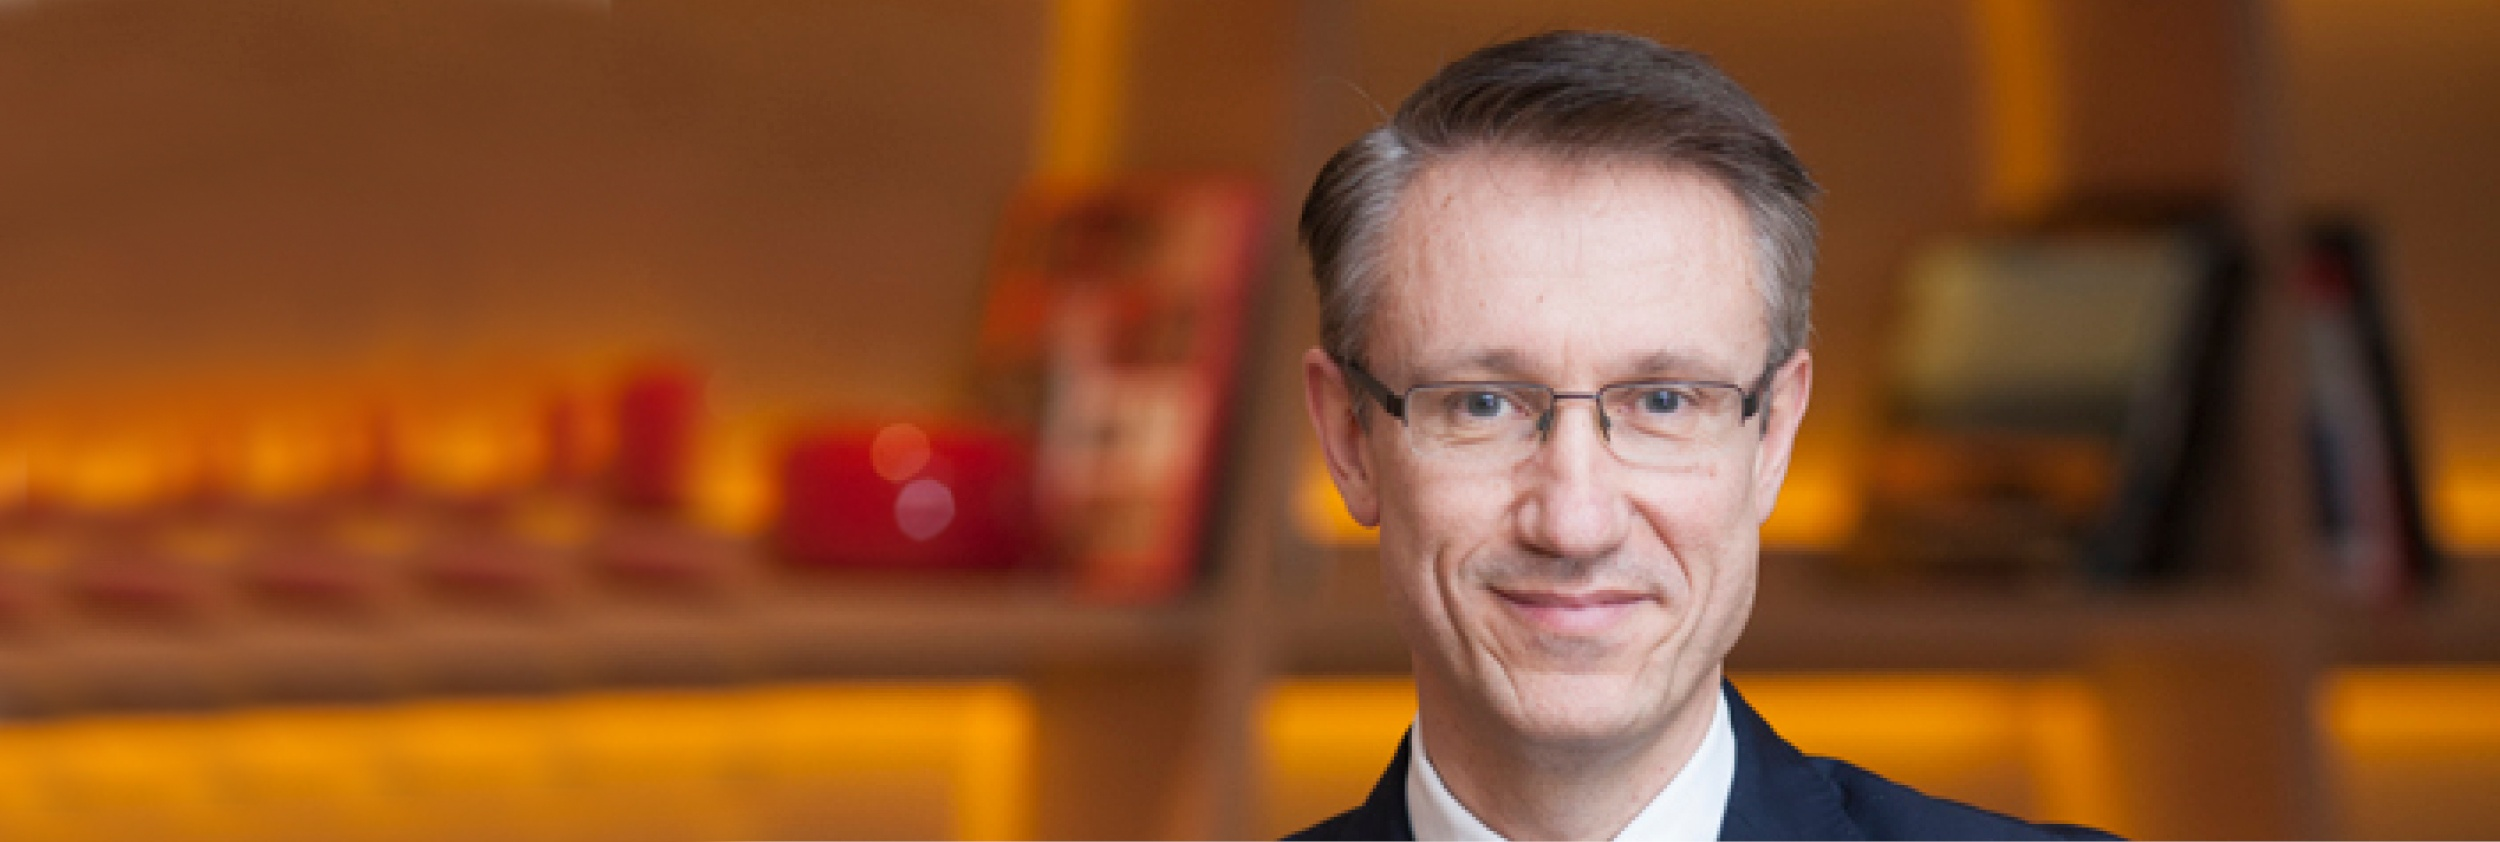 How to run an efficient hotel operation: Q&A with Vincent Dujardin